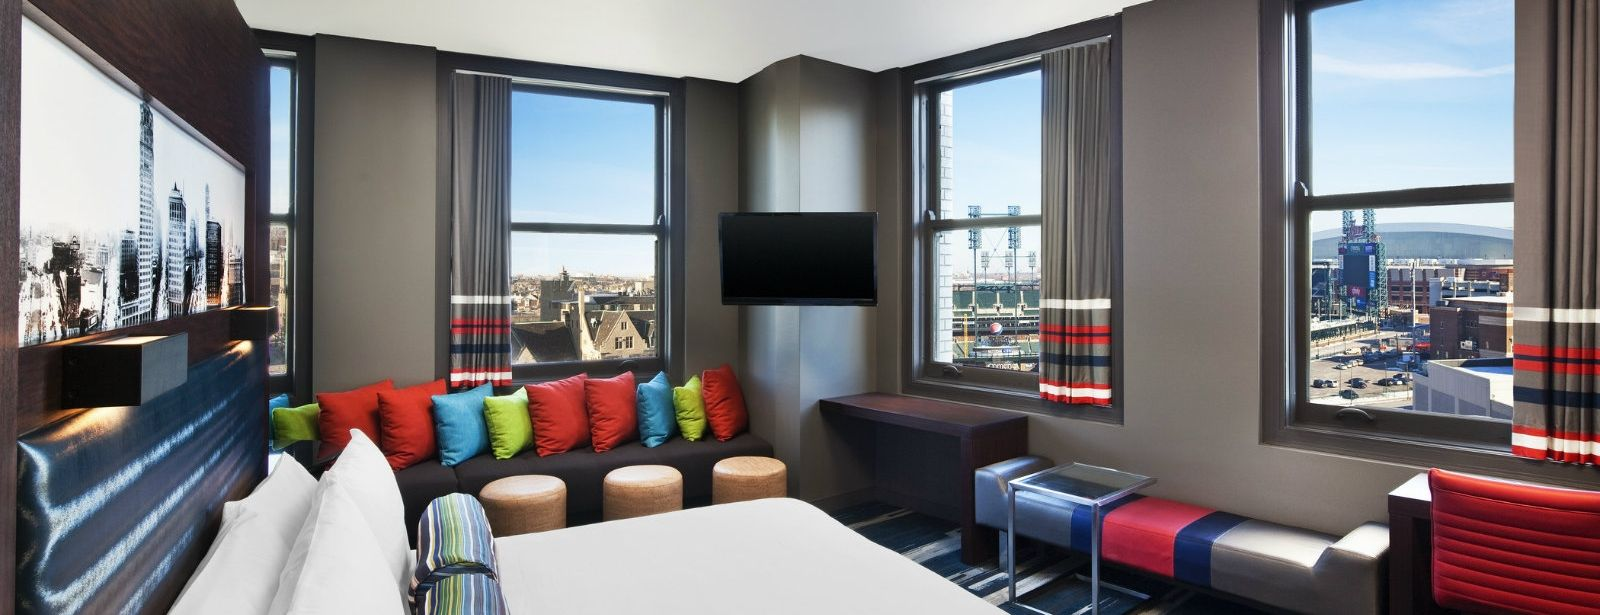 Detroit Accommodations - Aloft Corner Suite